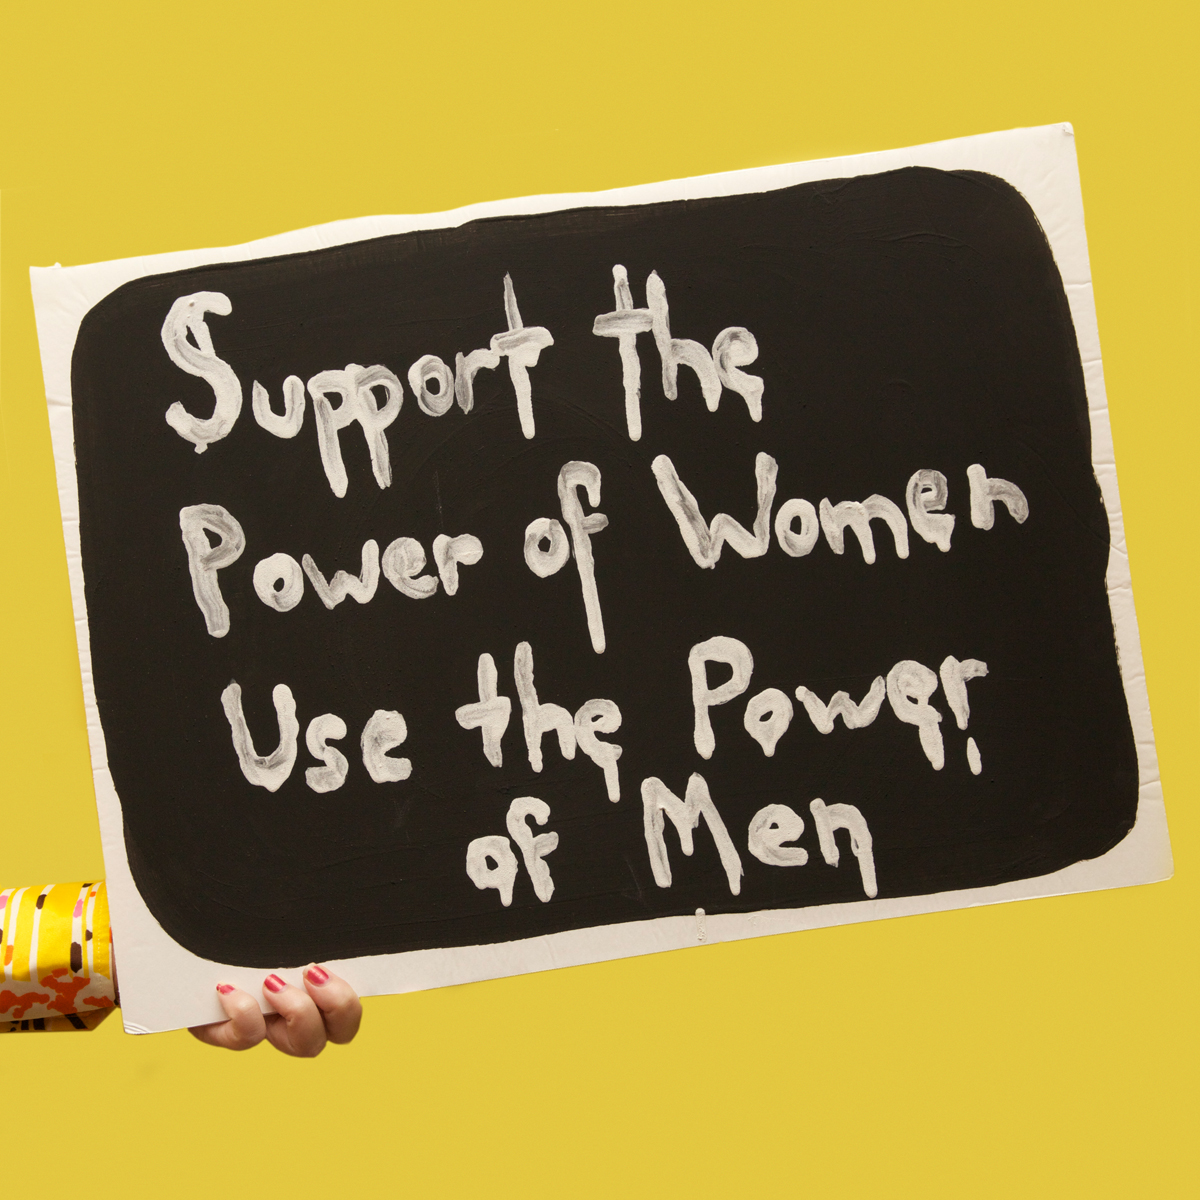 45 Protest Signs_Brandon and Olivia Locher_41_SupportThePowerofWomen